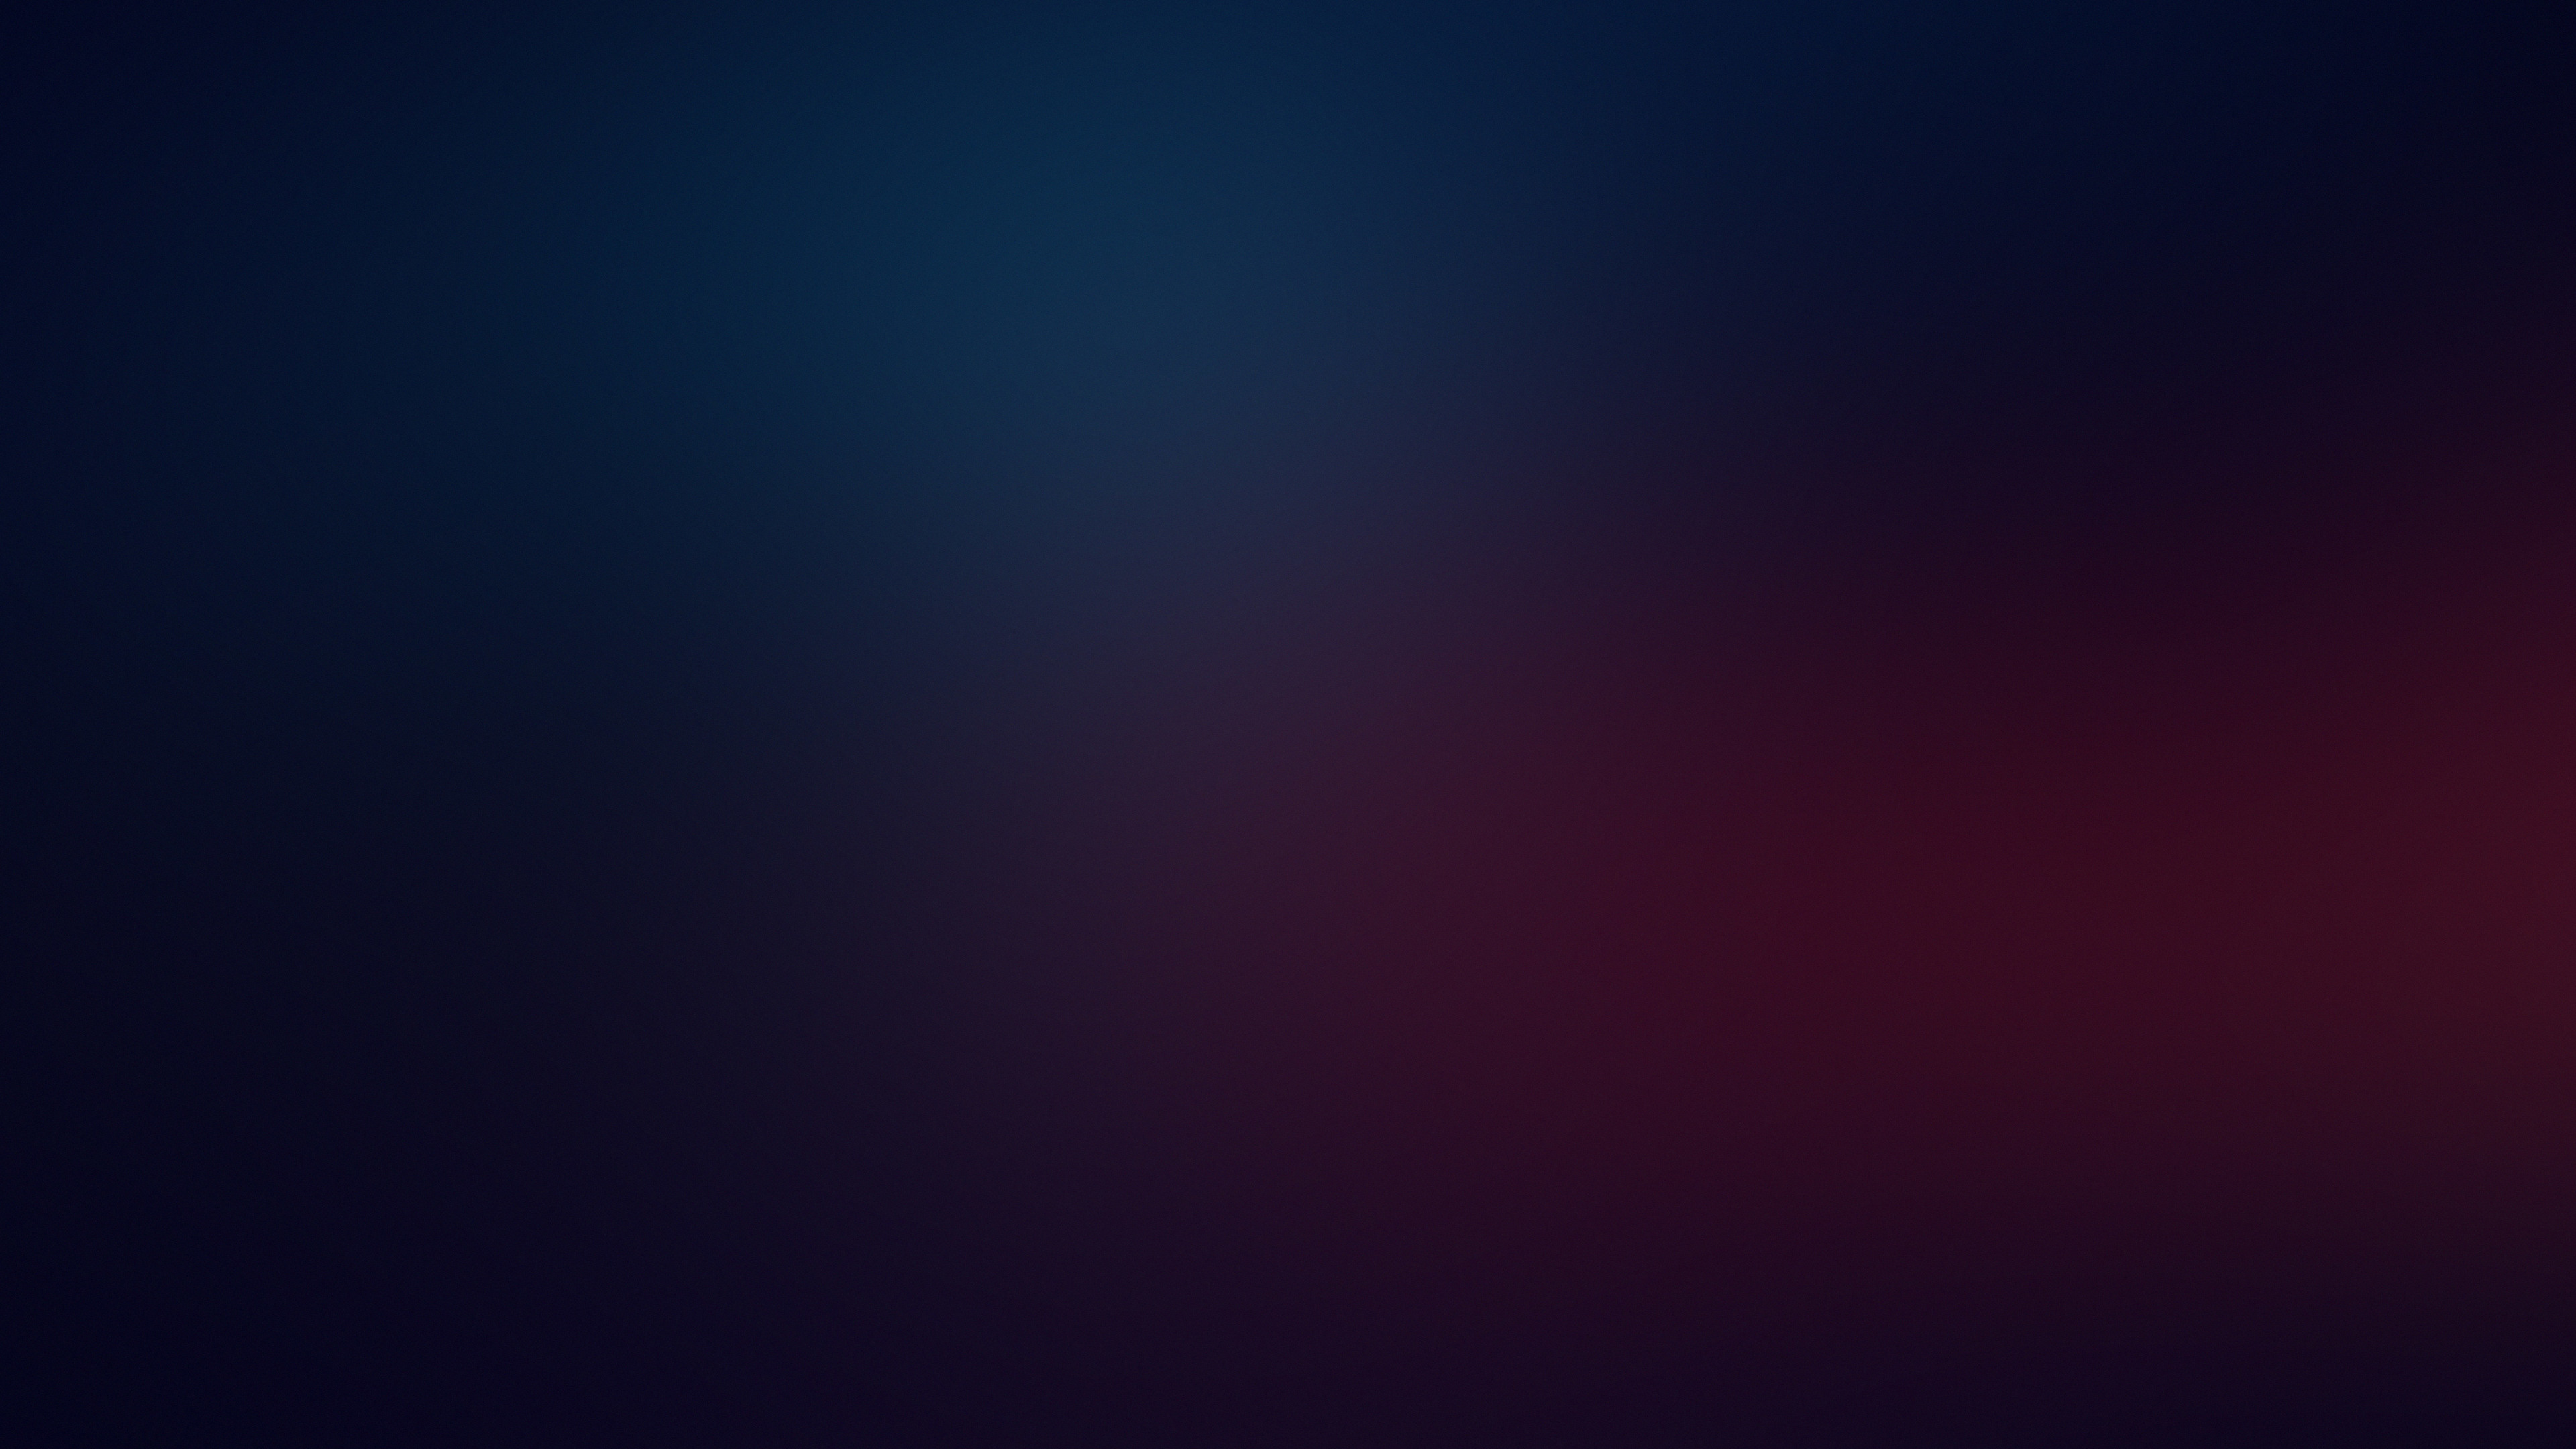 Wallpaper 4k Dark Blur Abstract 4k 4k Wallpapers Abstract